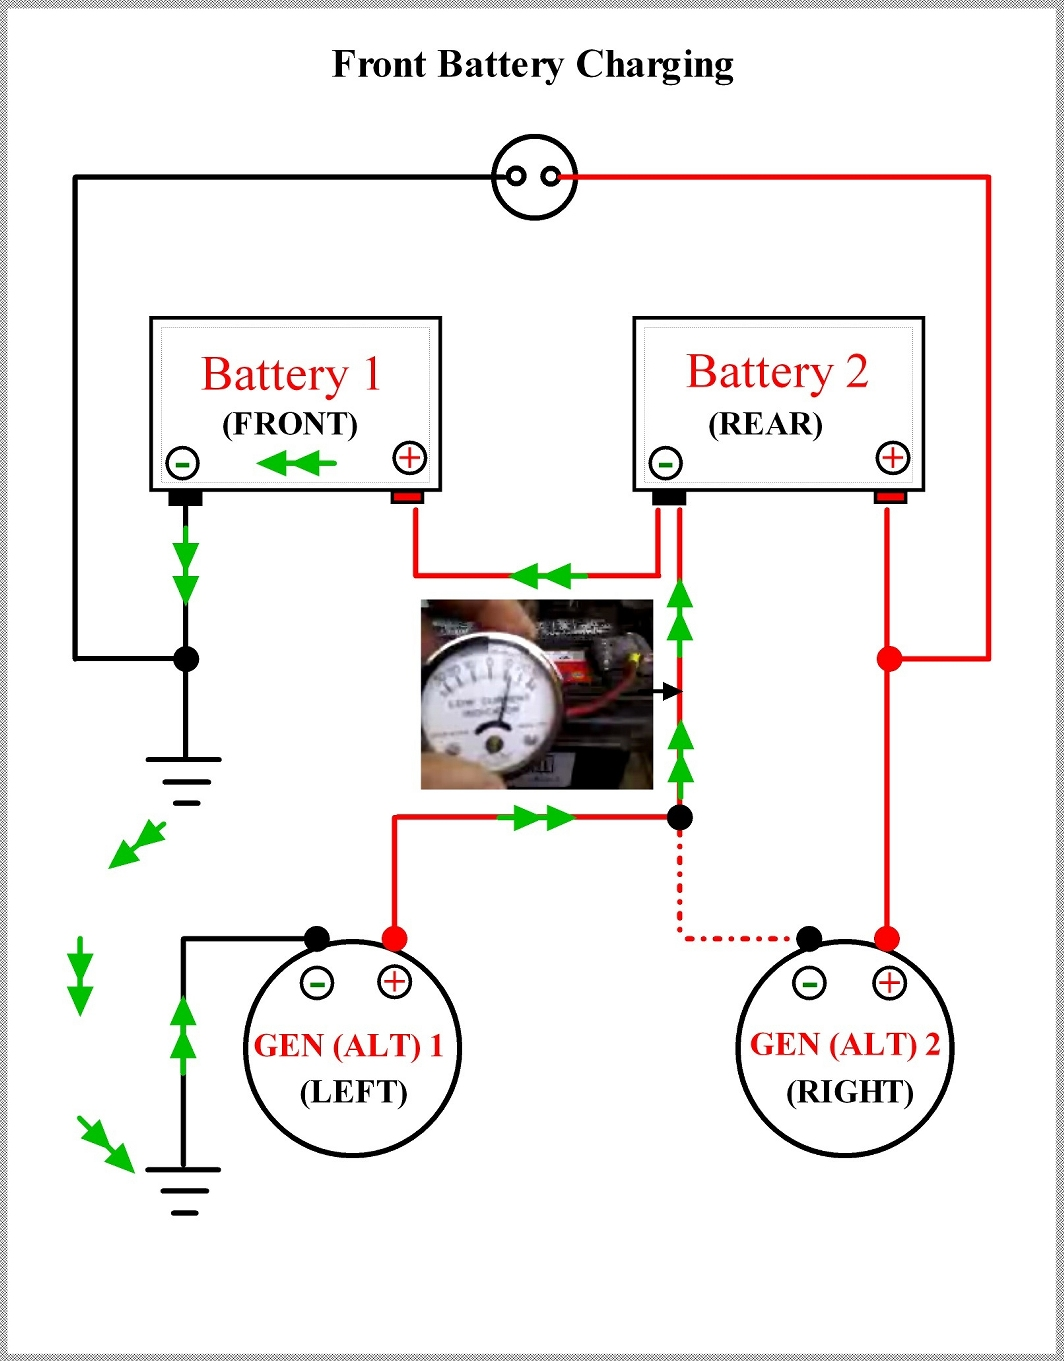 Front Charging Diagram cucv wiring diagram on cucv images free download wiring diagrams  at edmiracle.co